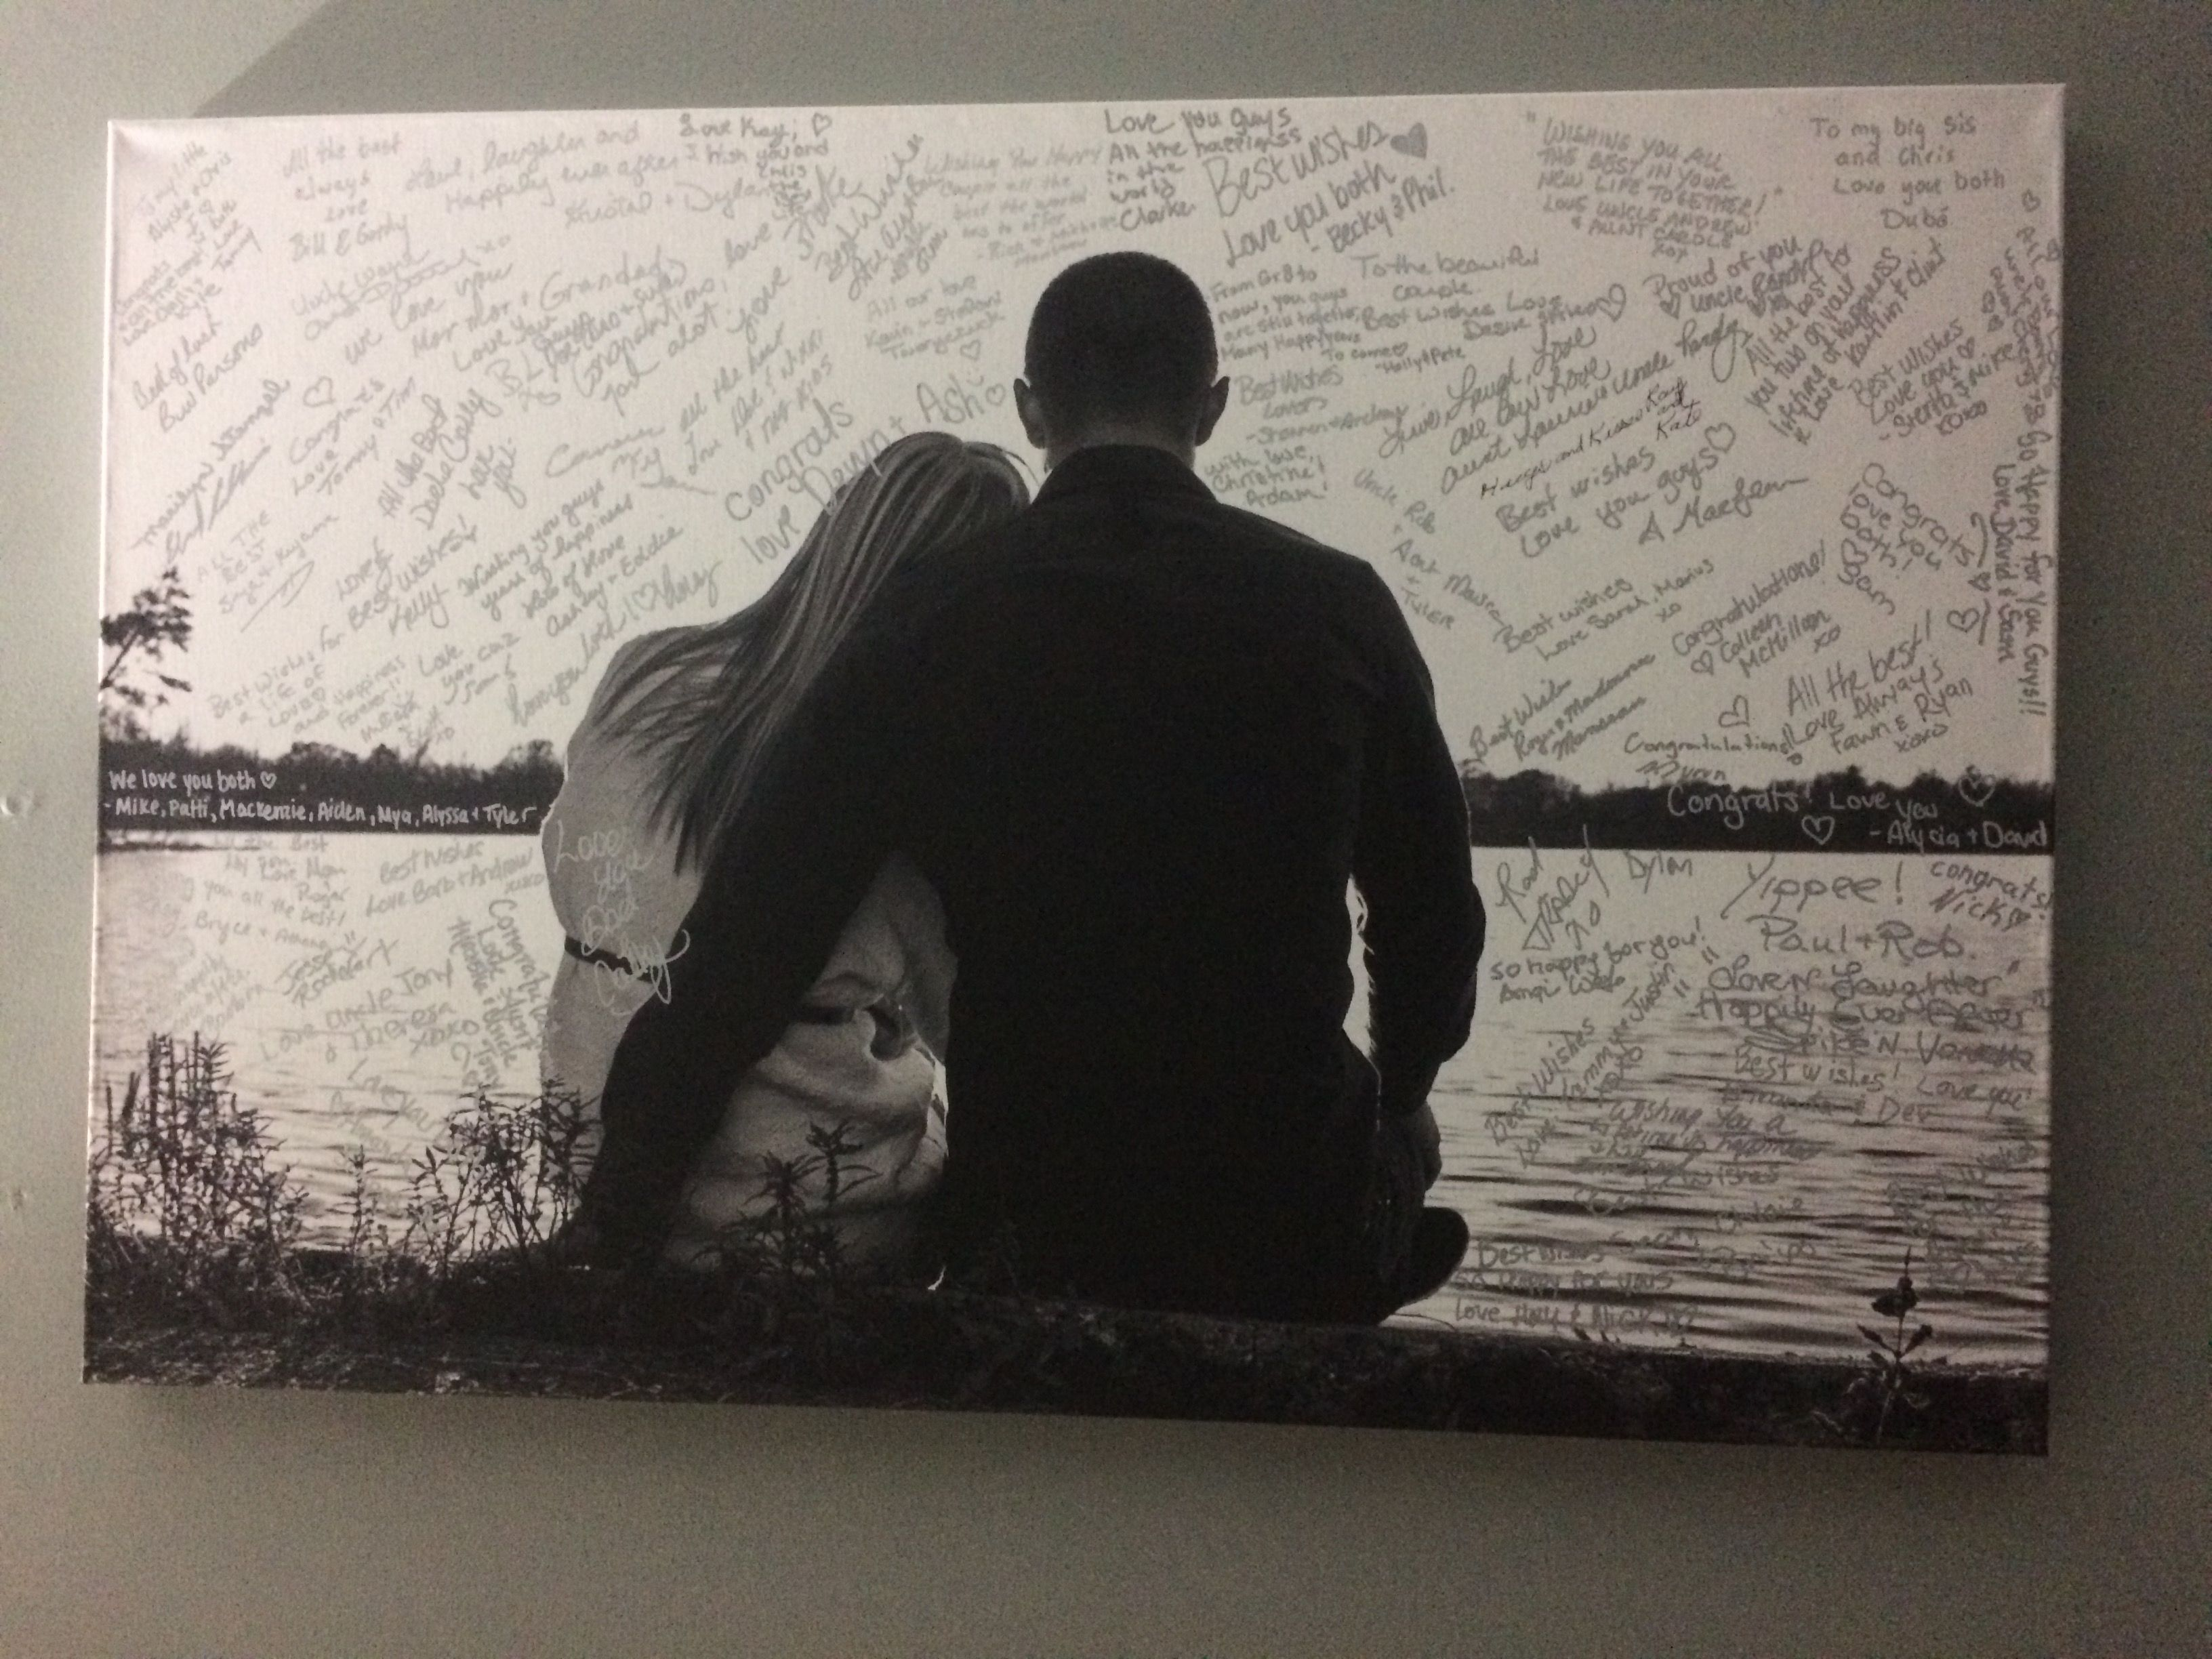 We made our wedding guest book into a large black and white canvas